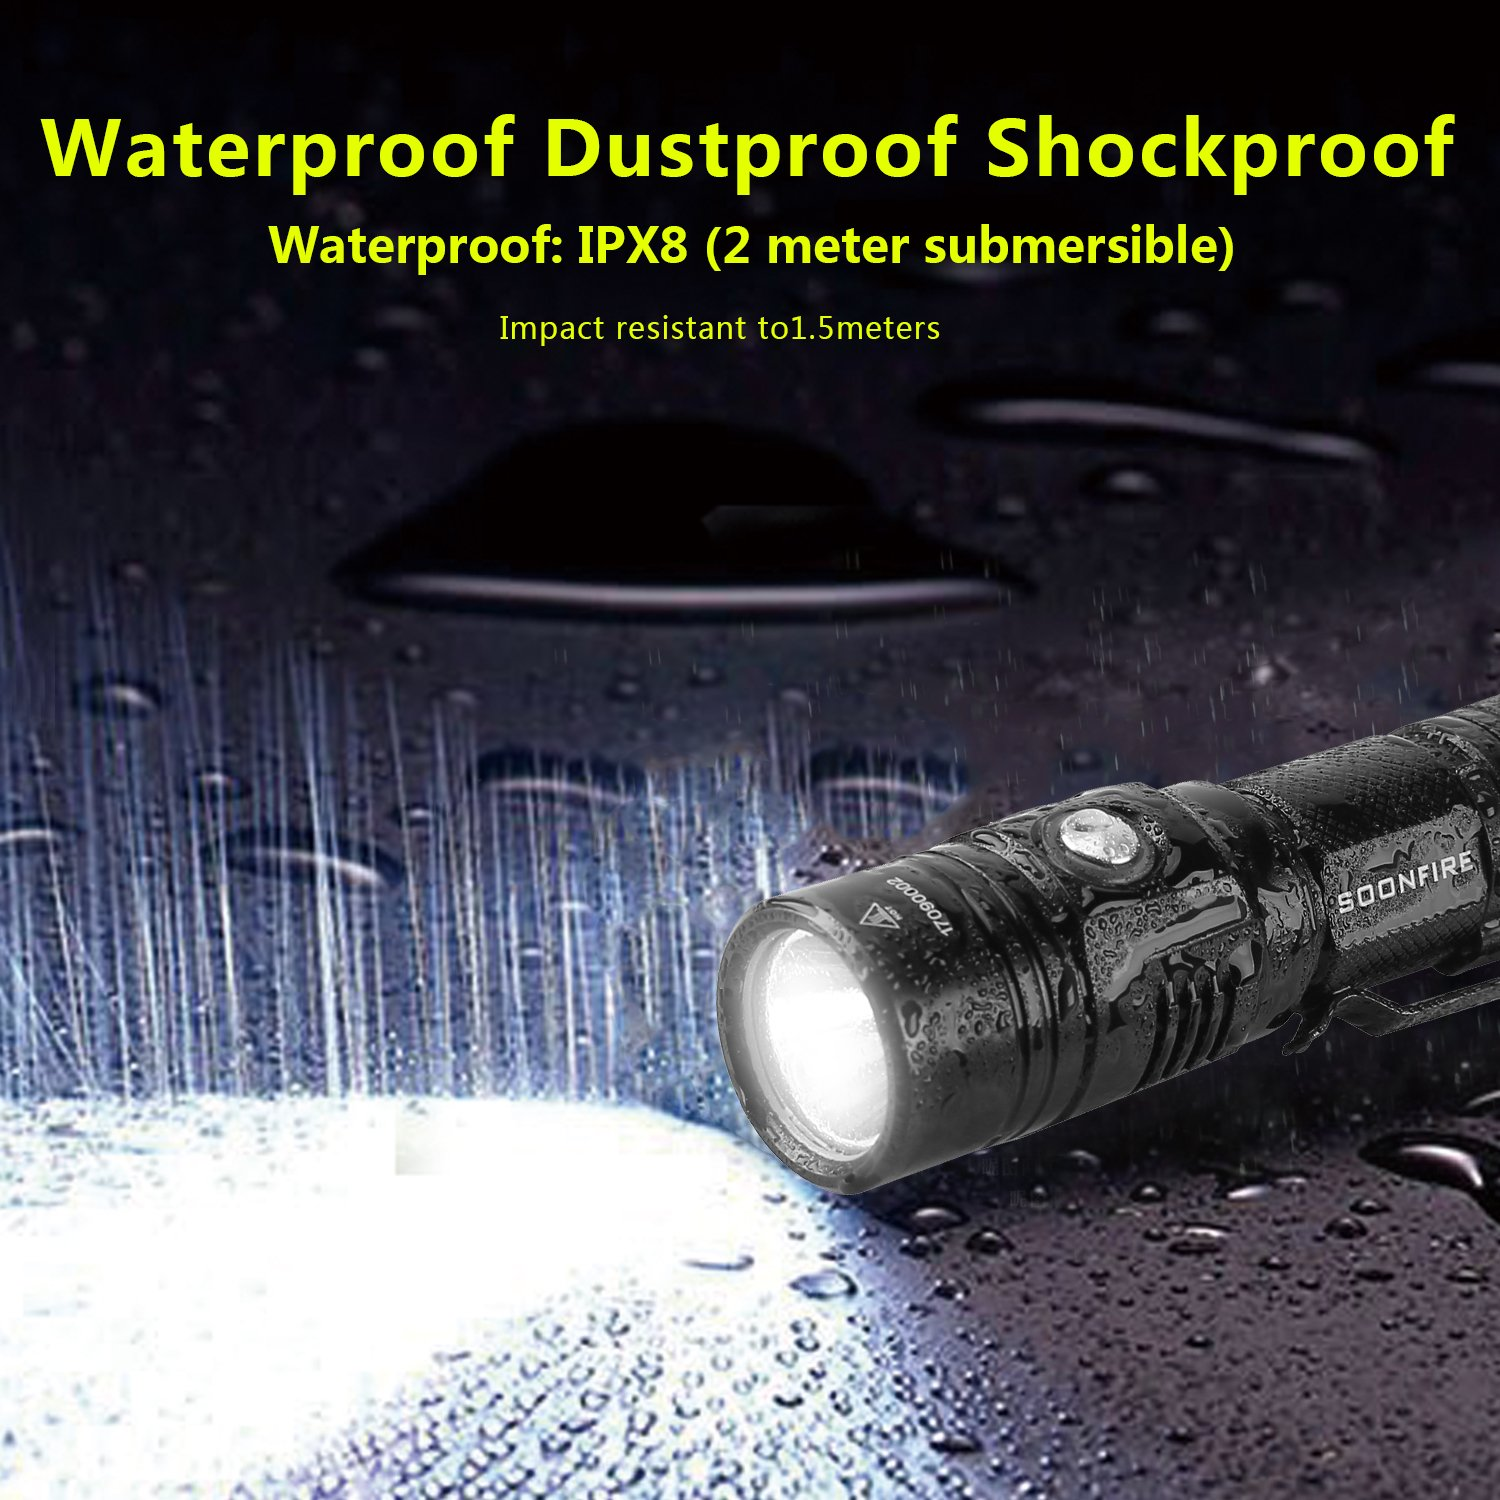 Cree XP-L LED Rechargeable Flashlight,Soonfire E07 USB Waterproof 1000 Lumen Compact EDC Flashlight with type 18650 3400mAh rechargeable Li-ion battery by soonfire (Image #4)